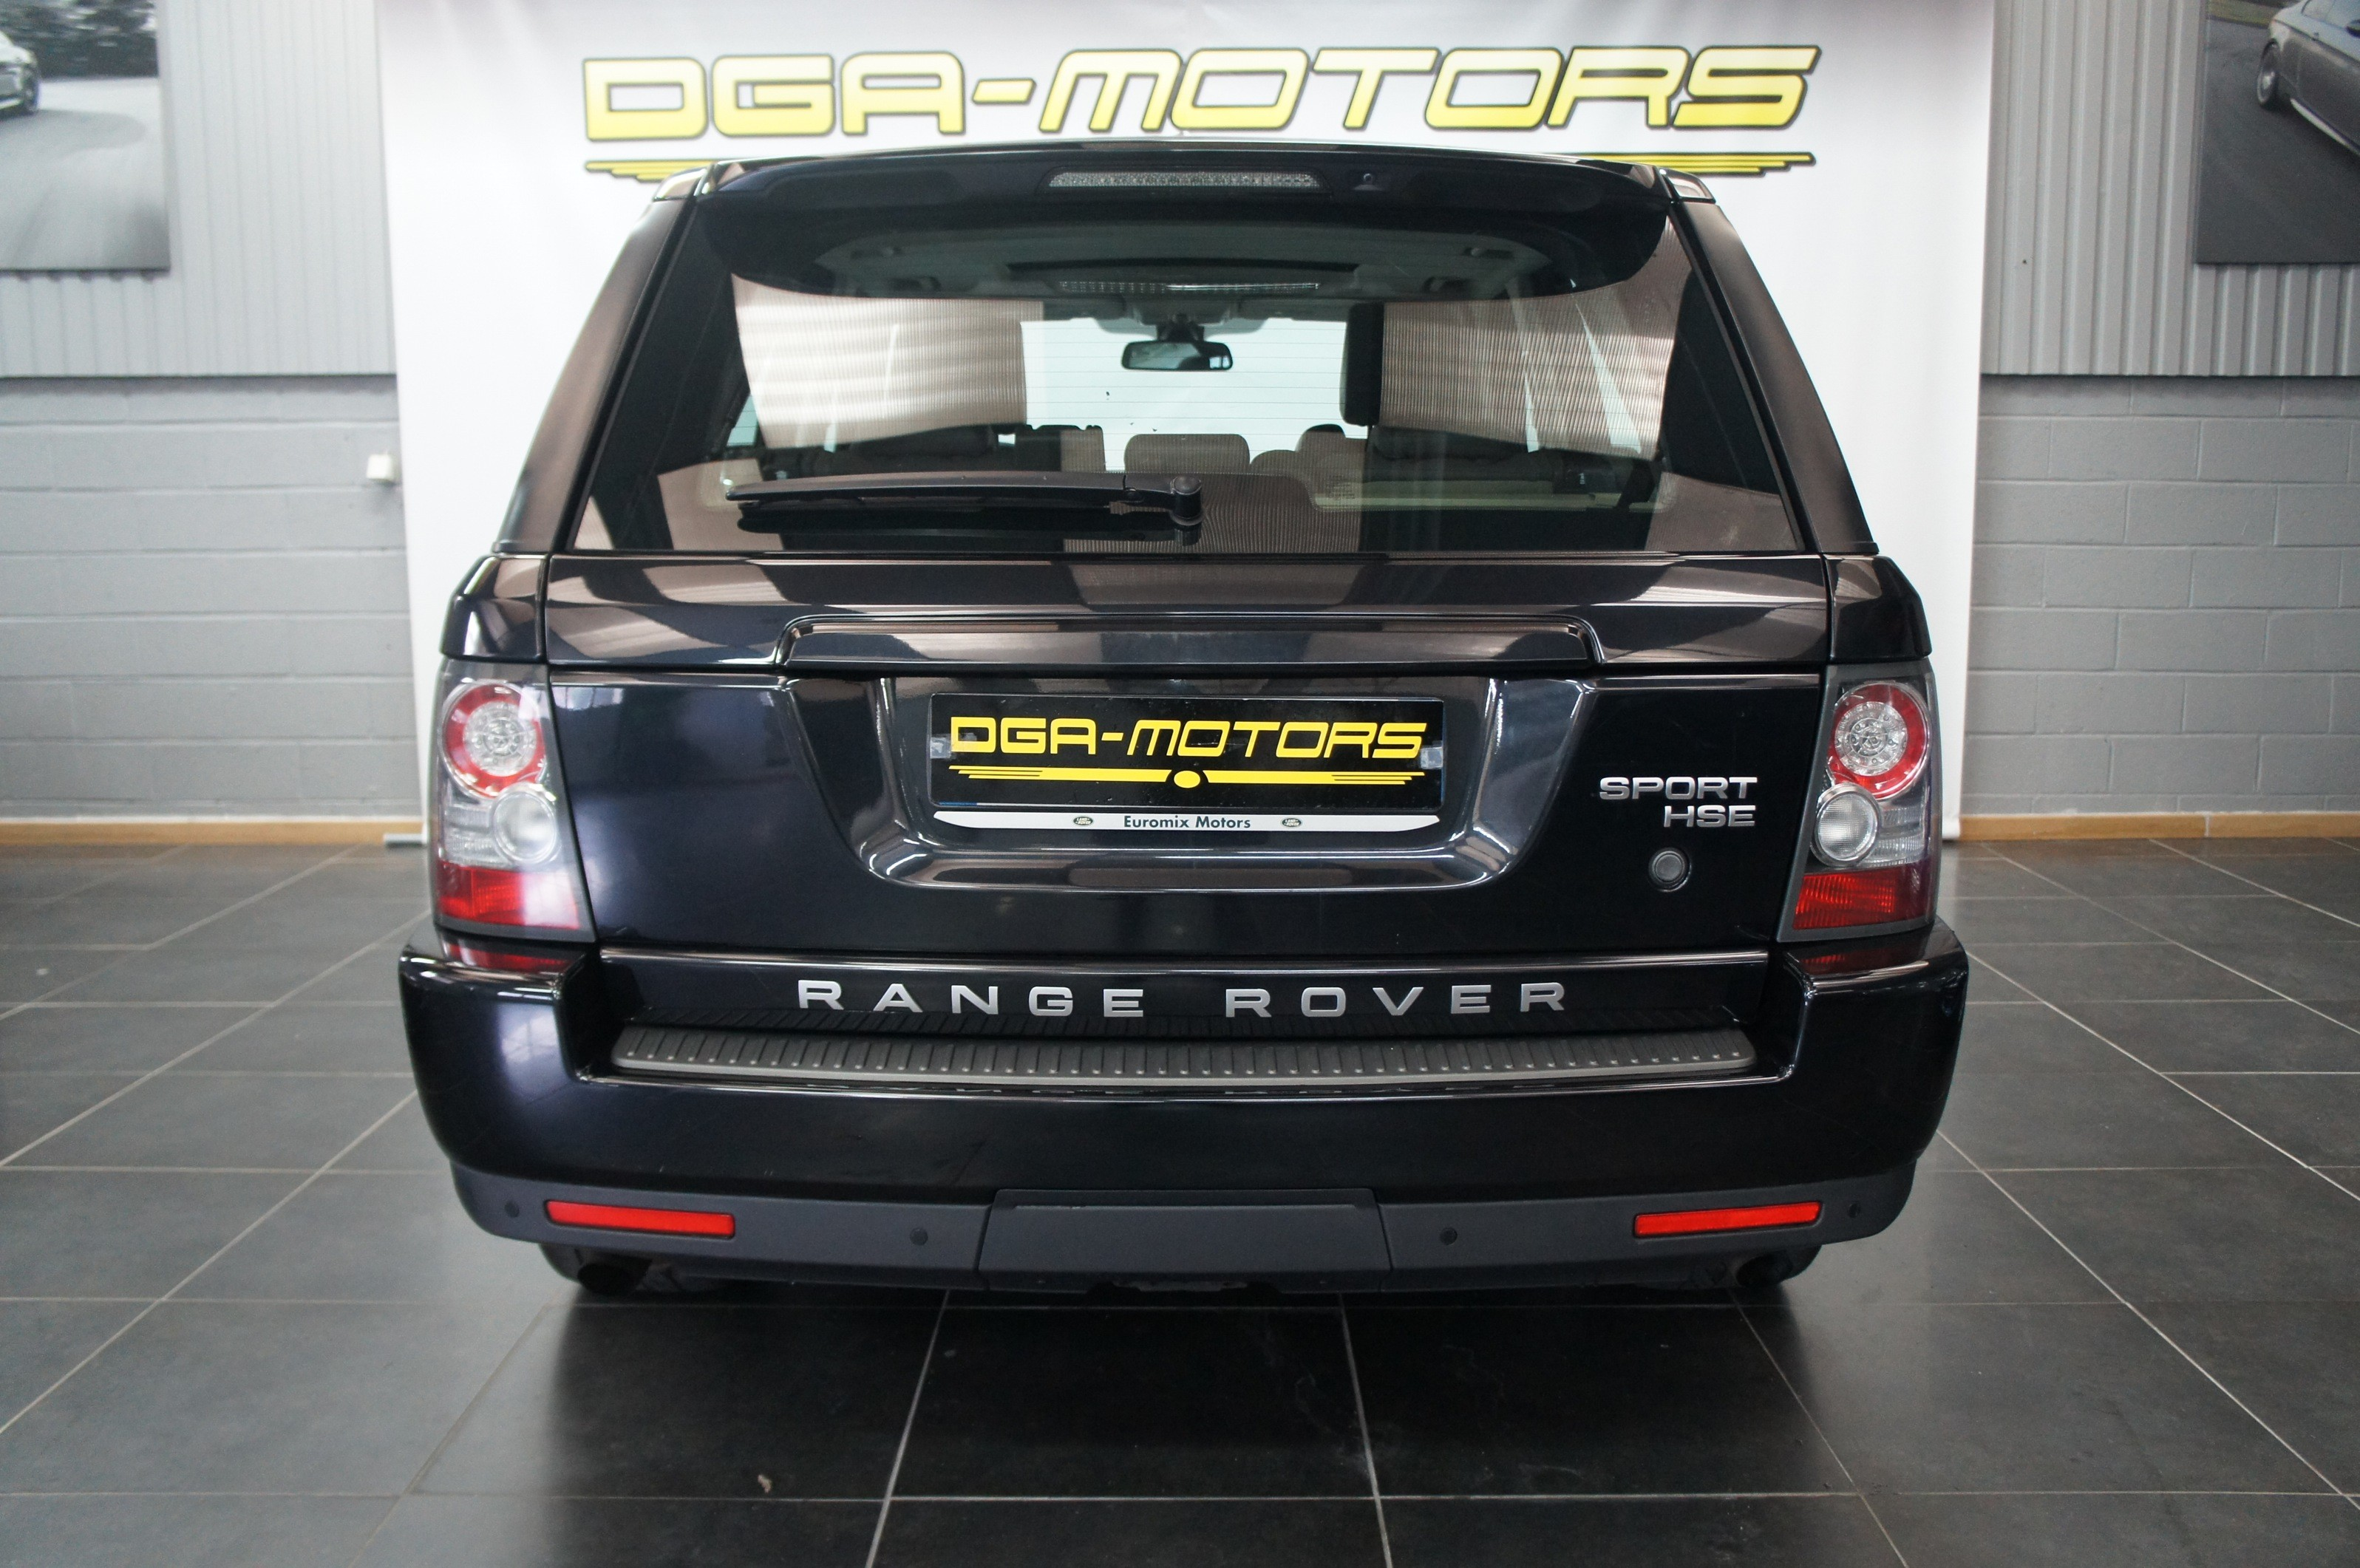 land rover rangr rover sport hse dga motors. Black Bedroom Furniture Sets. Home Design Ideas